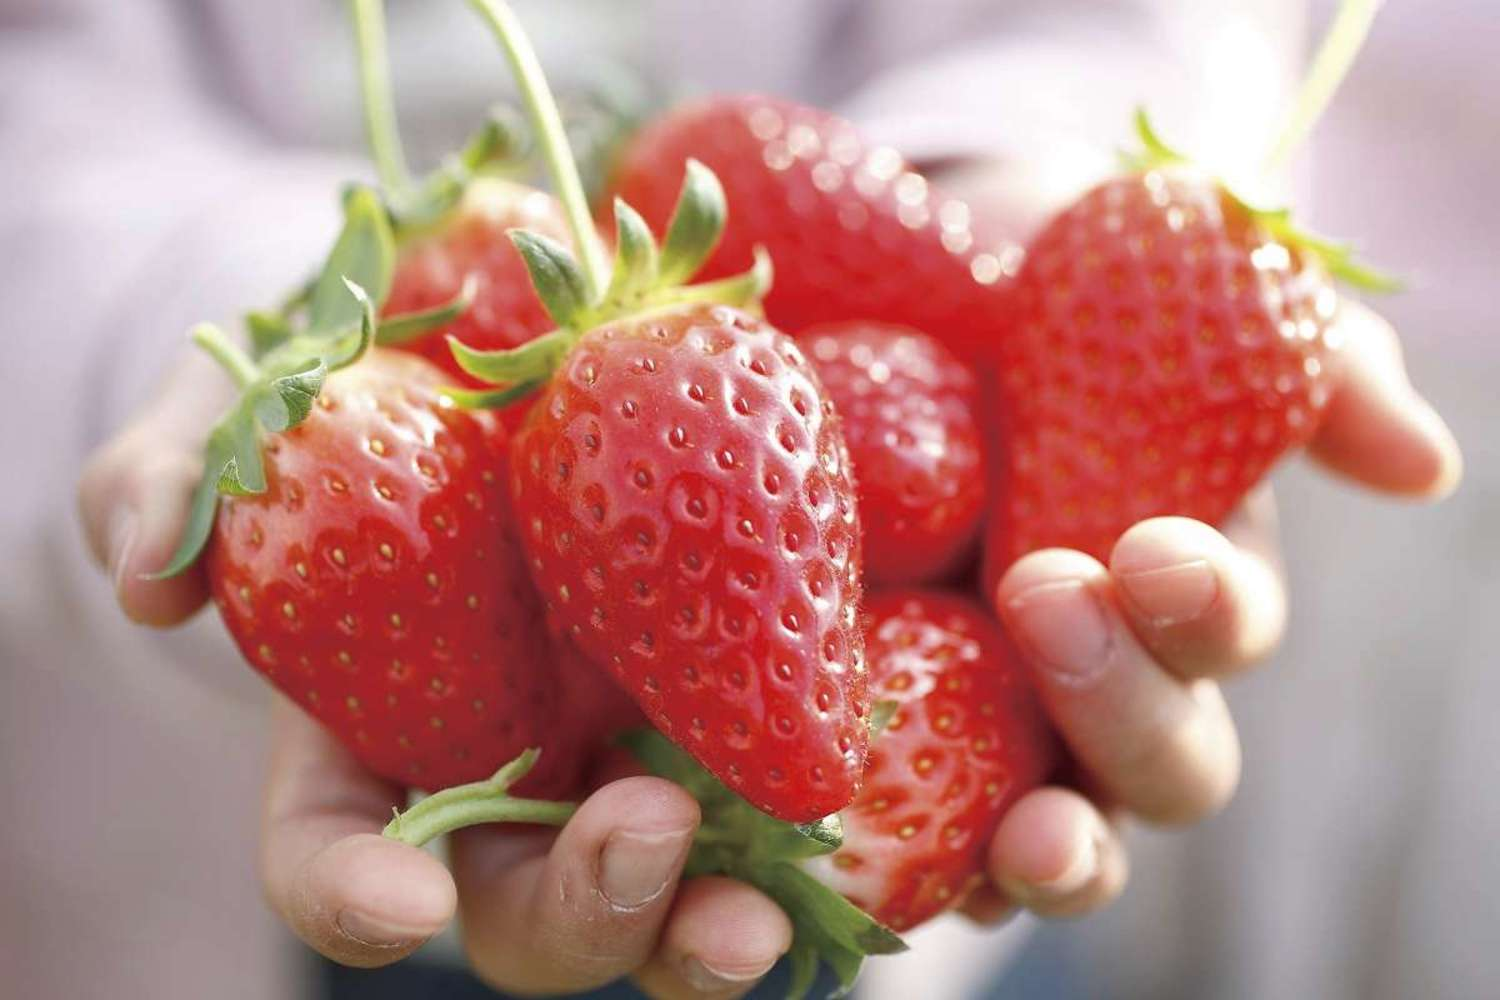 Fresh strawberry which has just finished being produced to heart's content! Strawberry hunting to enjoy in Izunokuni-shi